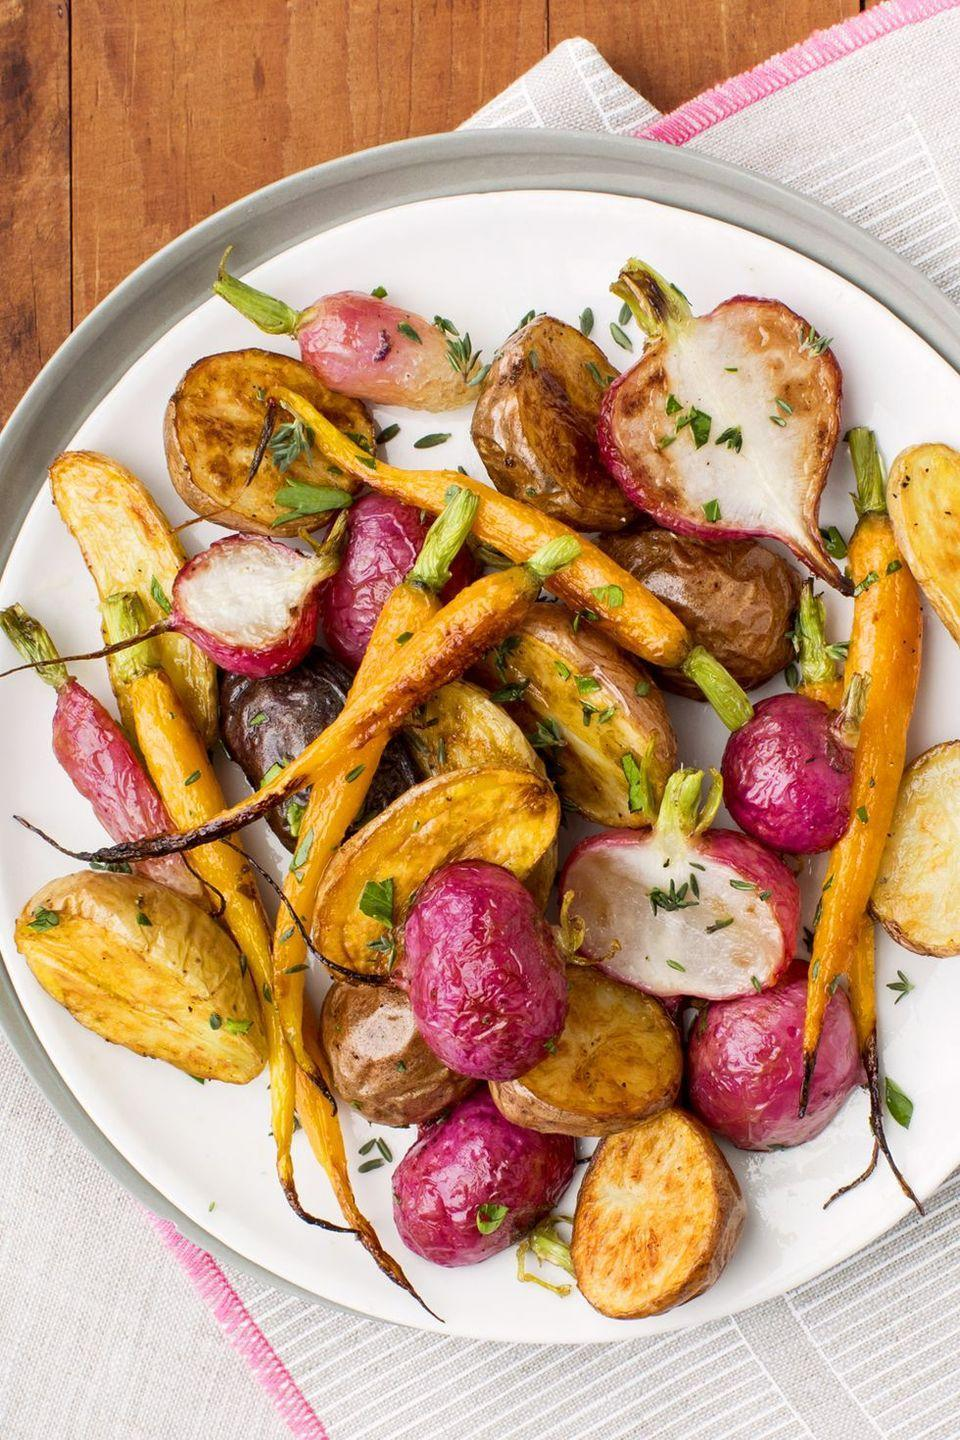 """<p>Rich in color and flavor, these root veggies, dressed in thyme and parsley, are the perfect spring side dish.</p><p><a href=""""https://www.goodhousekeeping.com/food-recipes/a43199/herb-roasted-root-vegetables-recipe/"""" rel=""""nofollow noopener"""" target=""""_blank"""" data-ylk=""""slk:Get the recipe for Herb-Roasted Root Vegetables »"""" class=""""link rapid-noclick-resp""""><em>Get the recipe for Herb-Roasted Root Vegetables »</em></a></p>"""